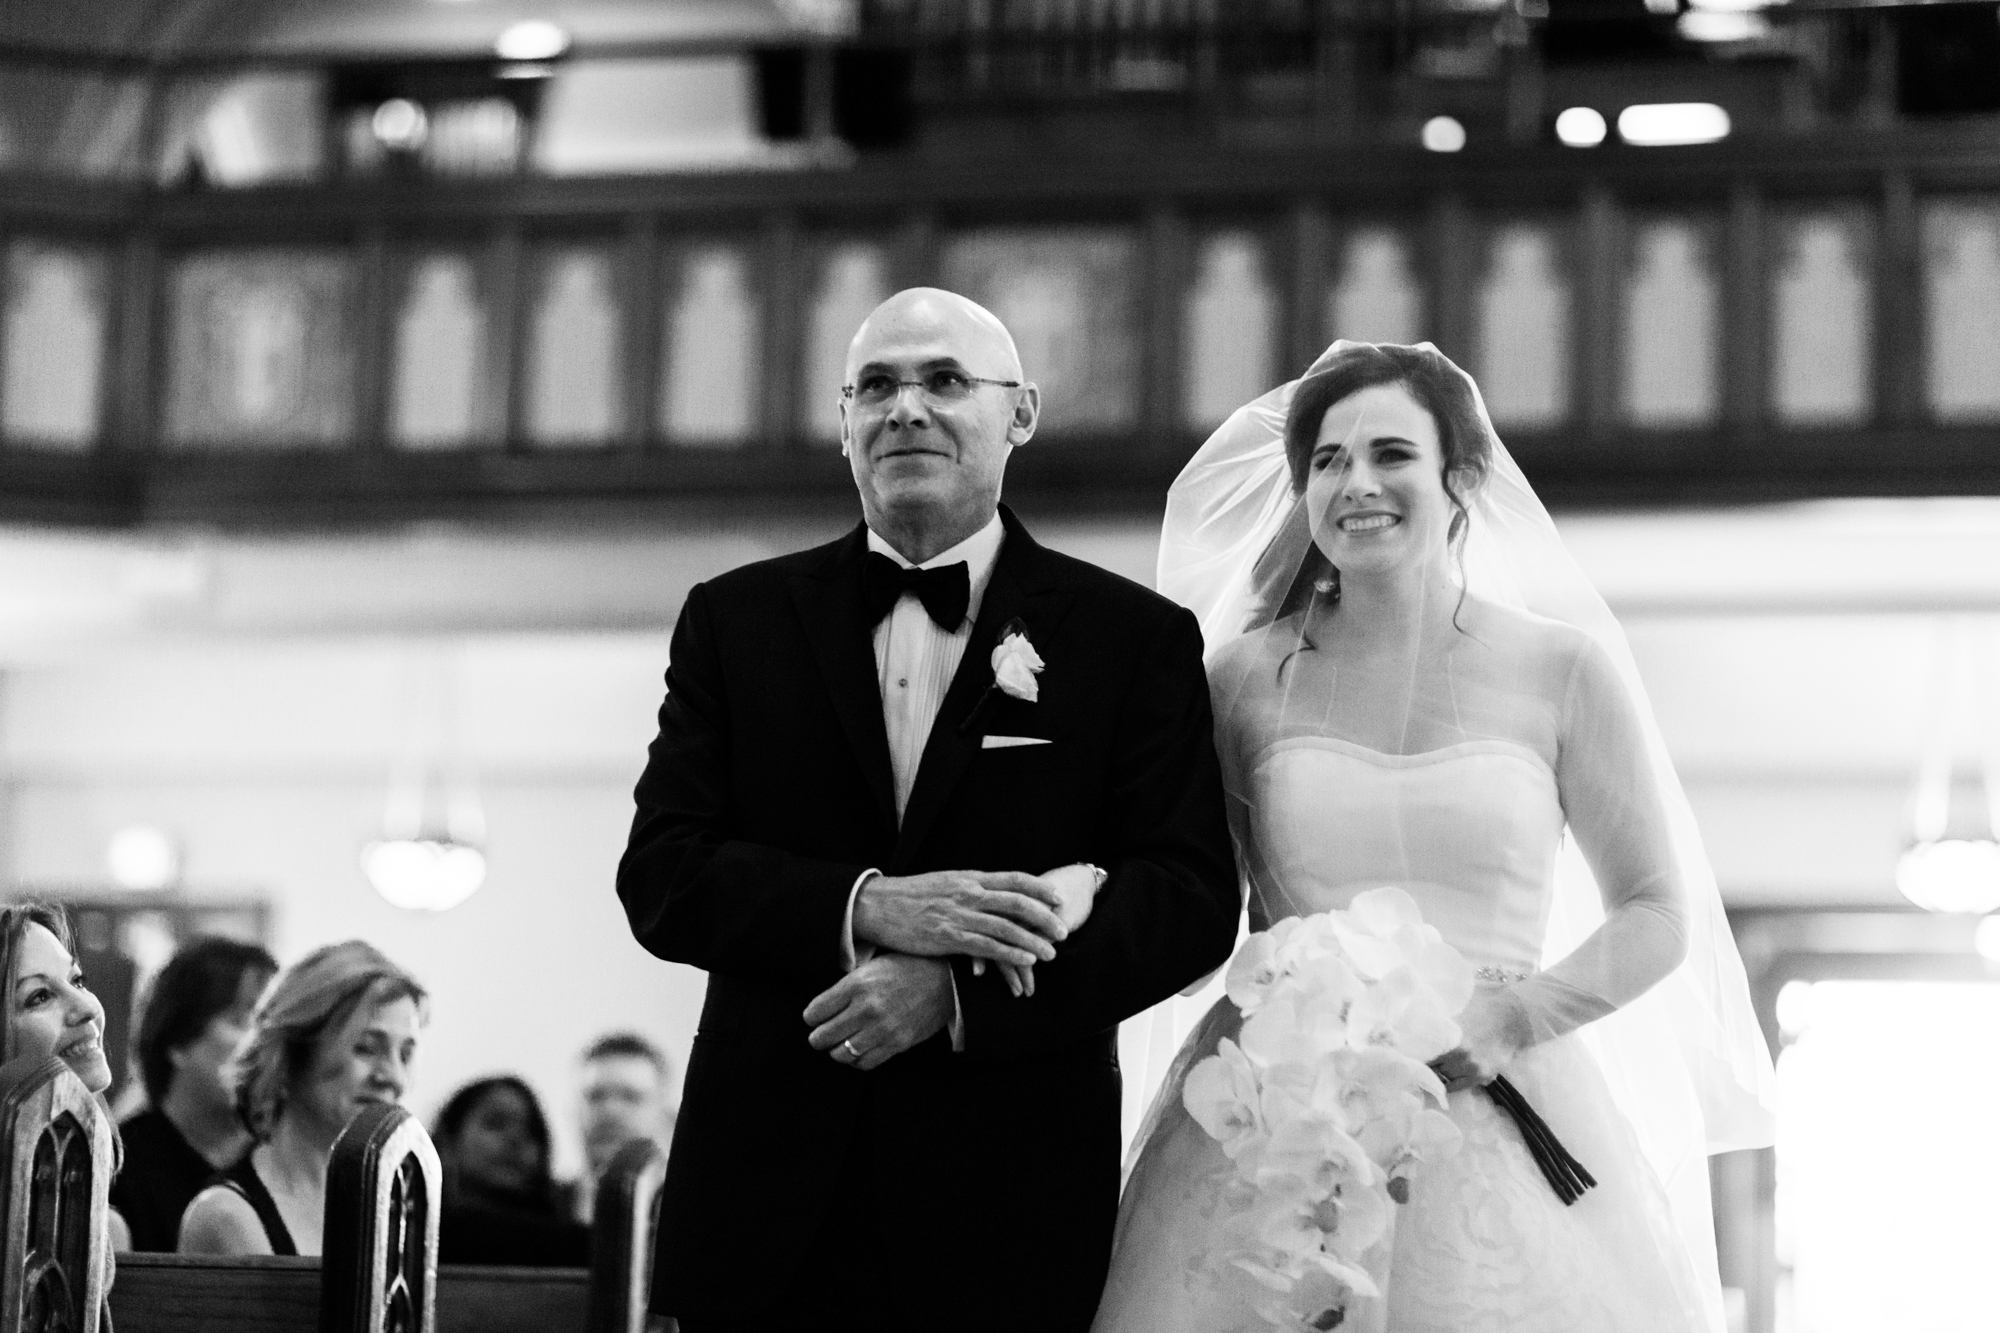 Bride and her father walk down the aisle during wedding ceremony at St James Lutheran Church in Chicago.